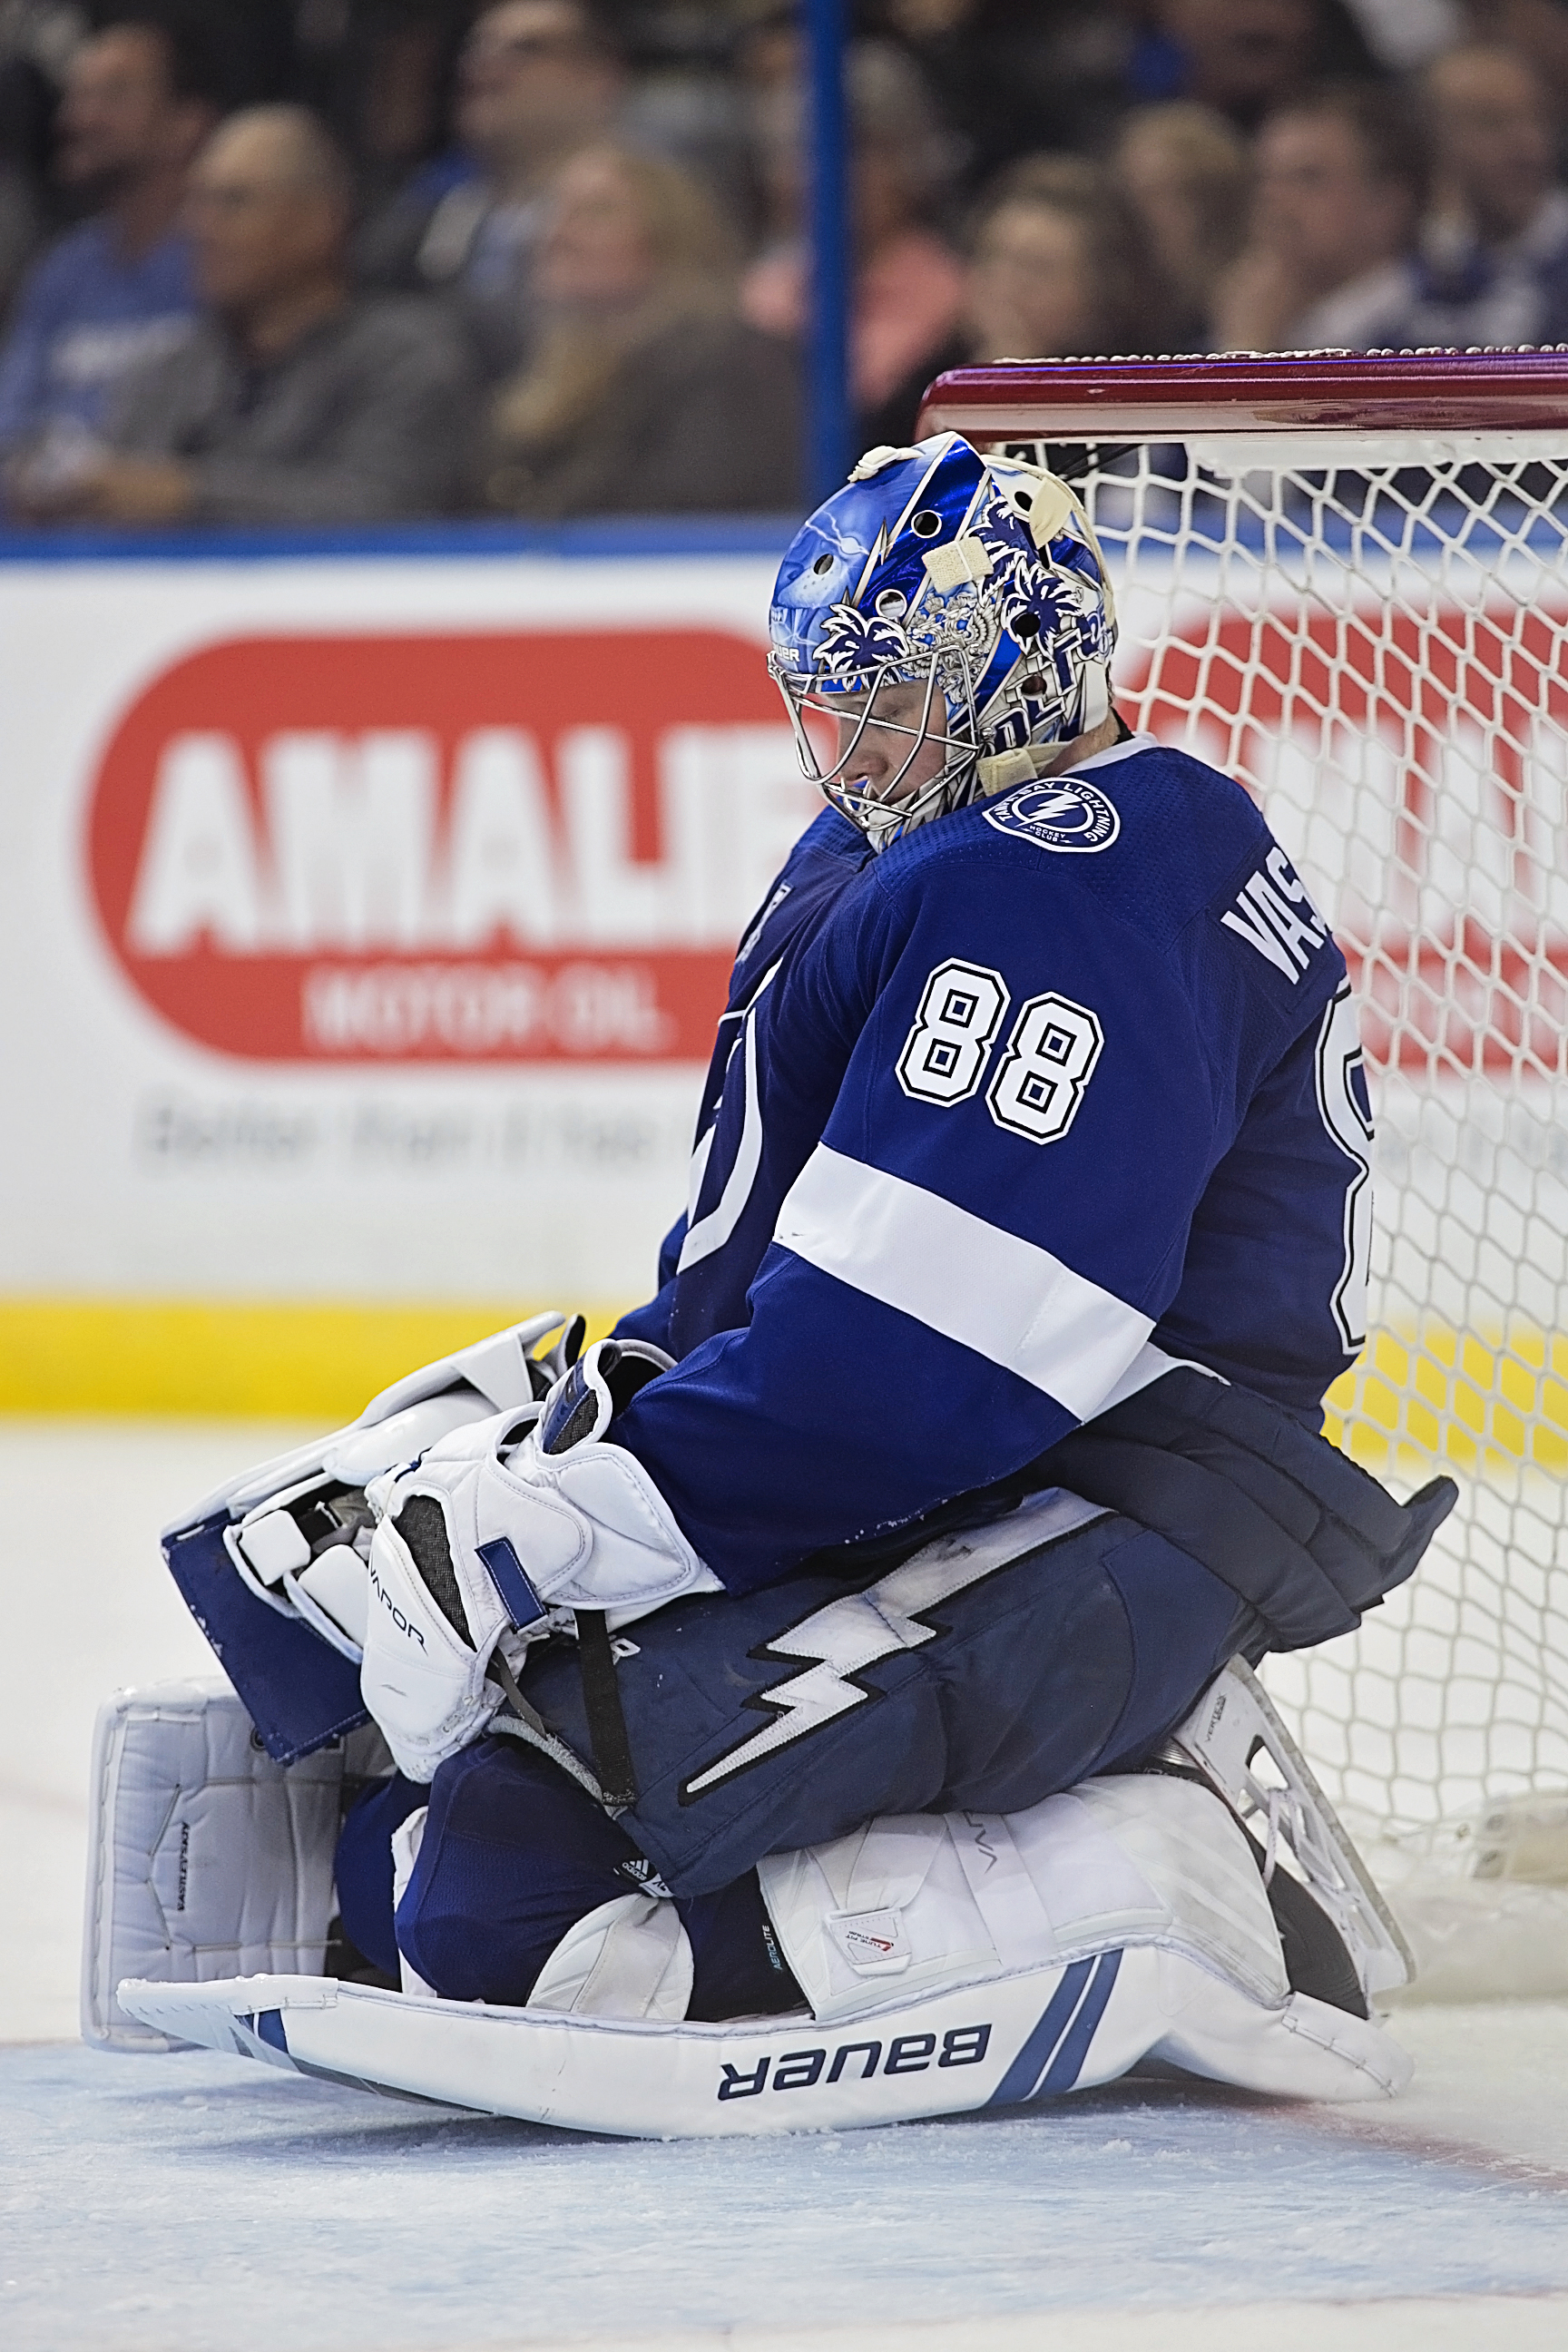 Vasilevskiy doesn't like being scored on./CARMEN MANDATO